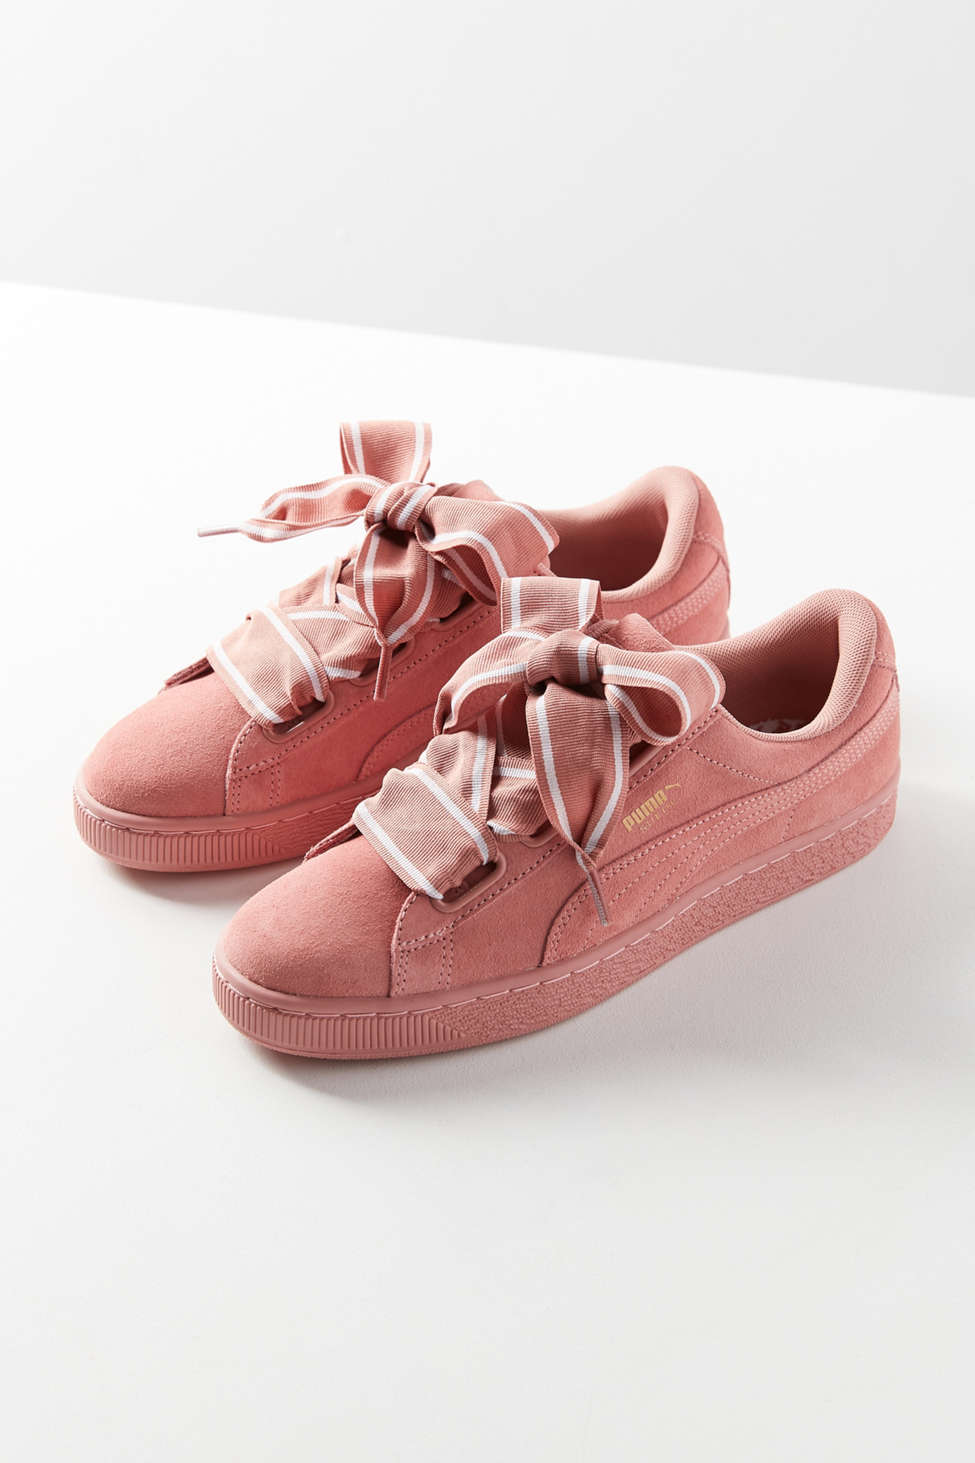 Slide View: 1: Puma Suede Heart Satin II Sneaker